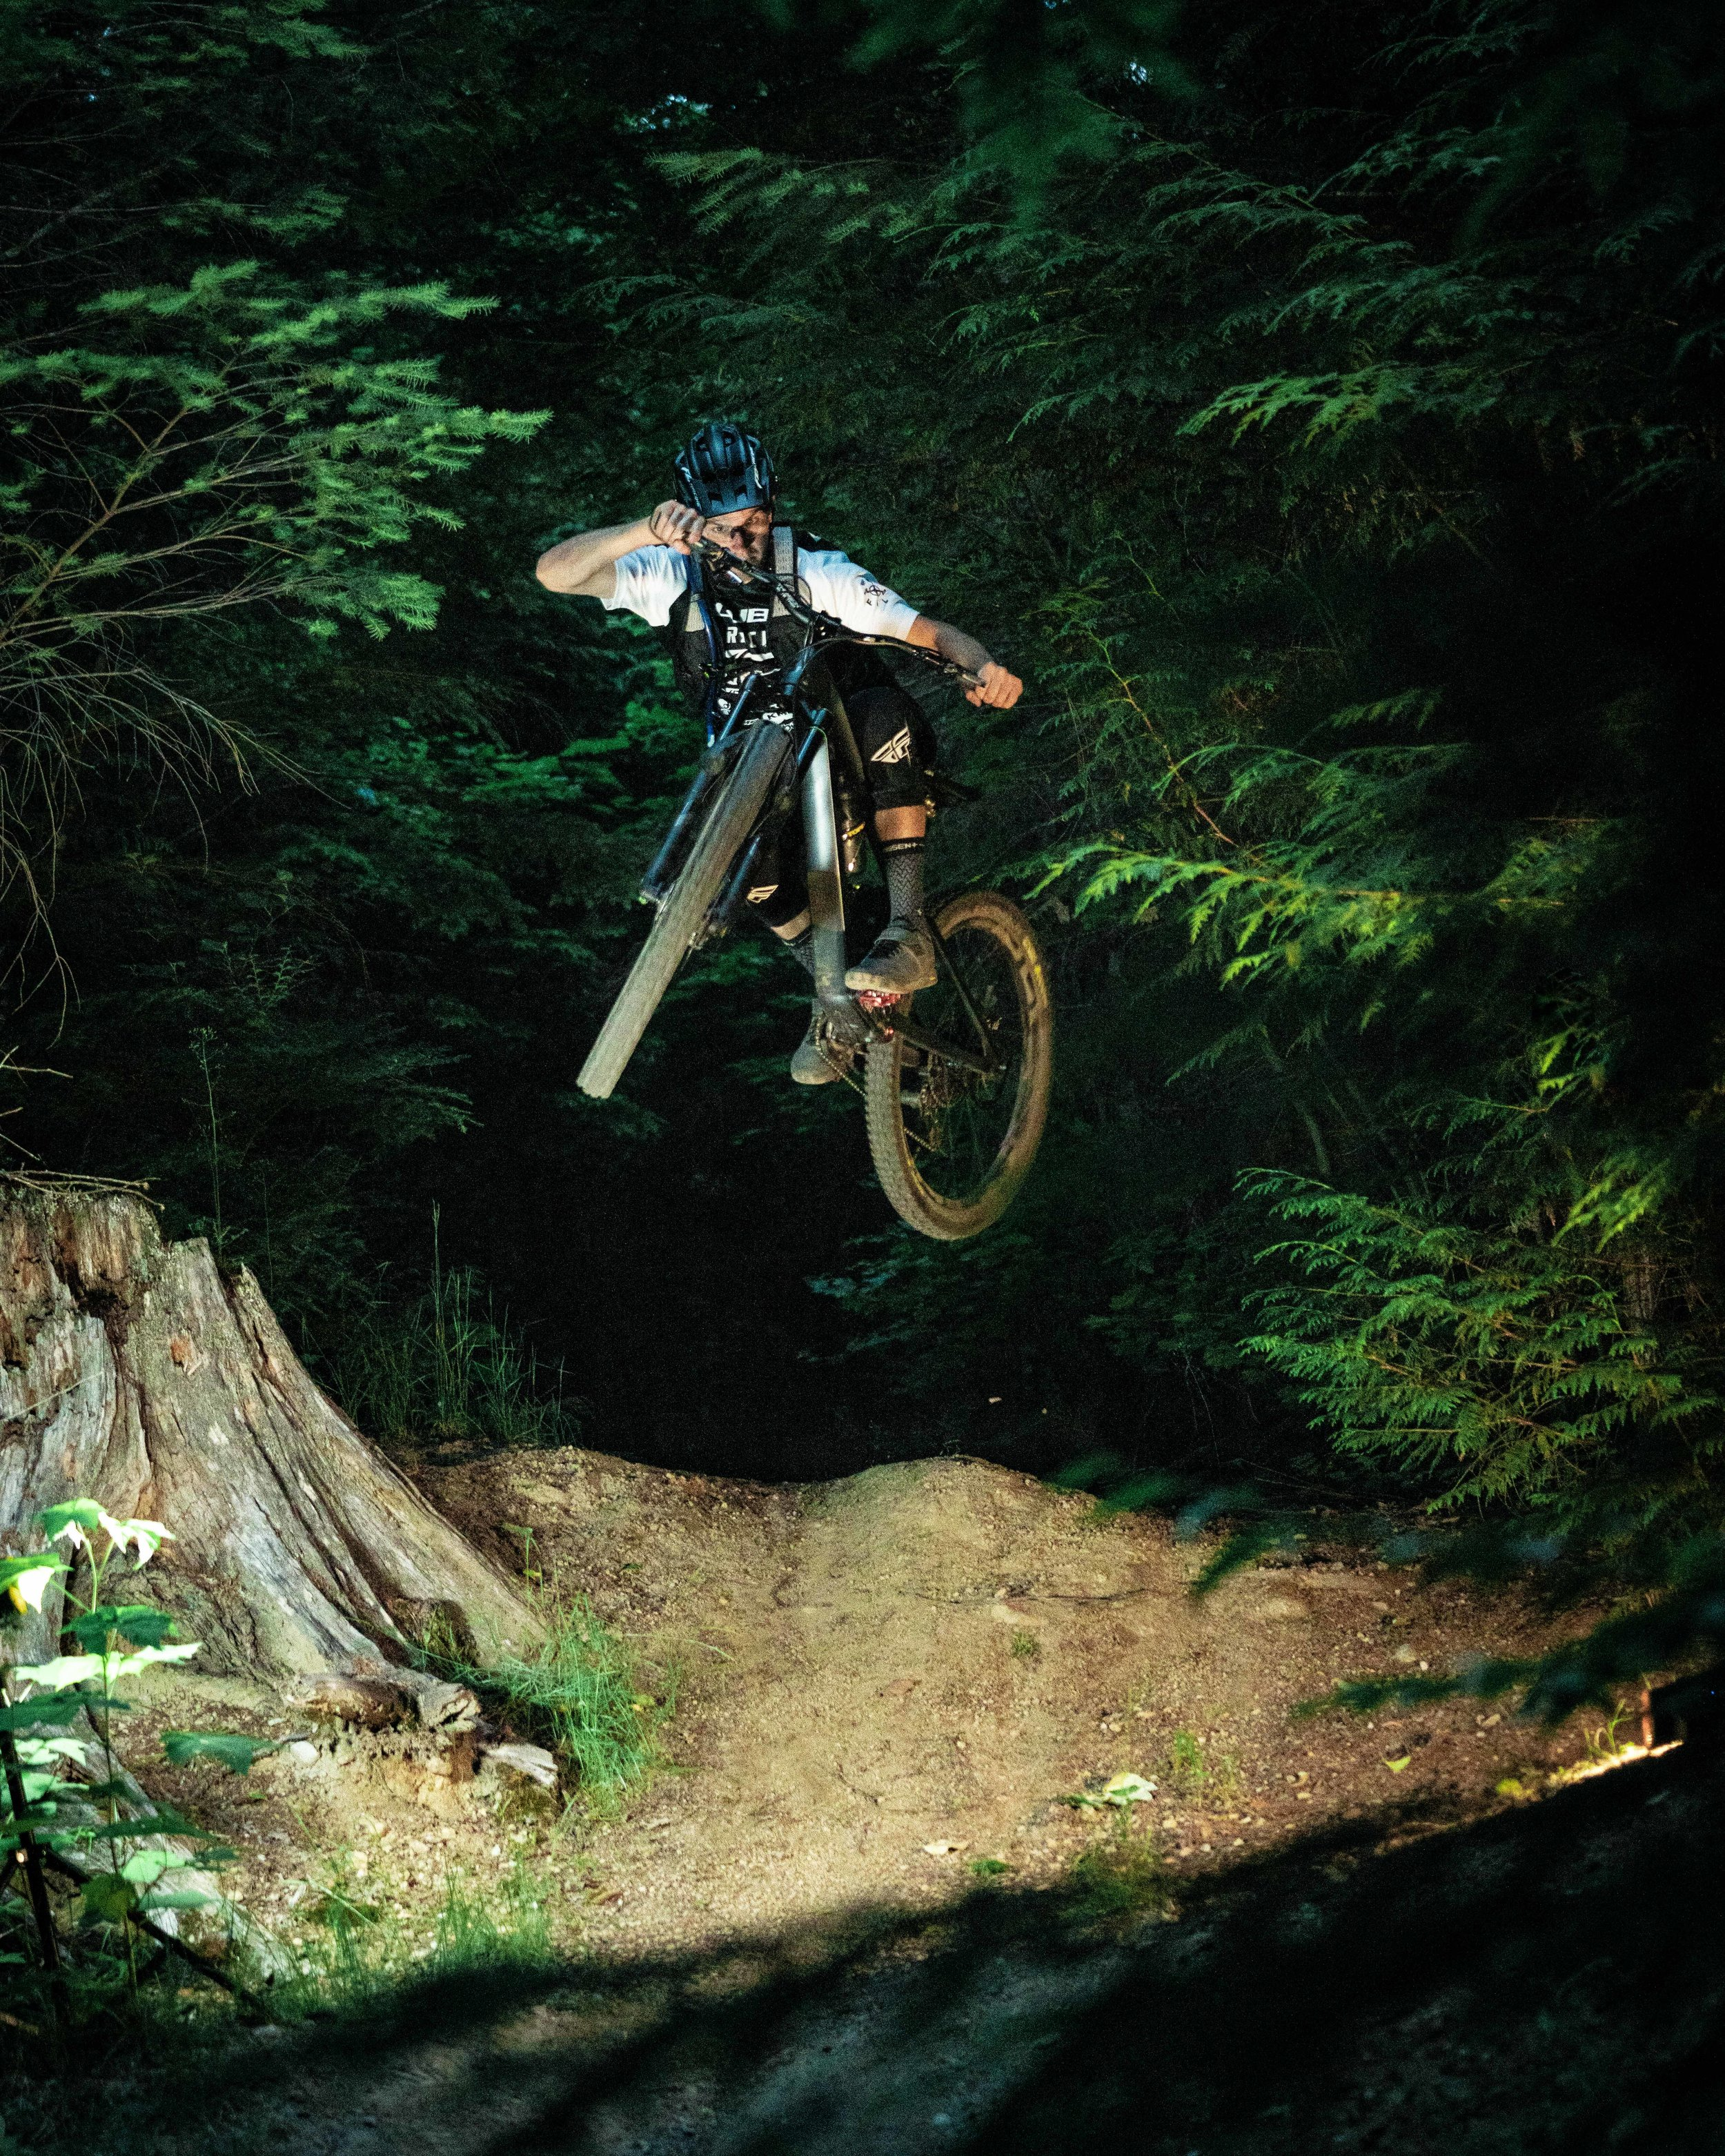 chasewhite-remymetailler-squamish-95.jpg